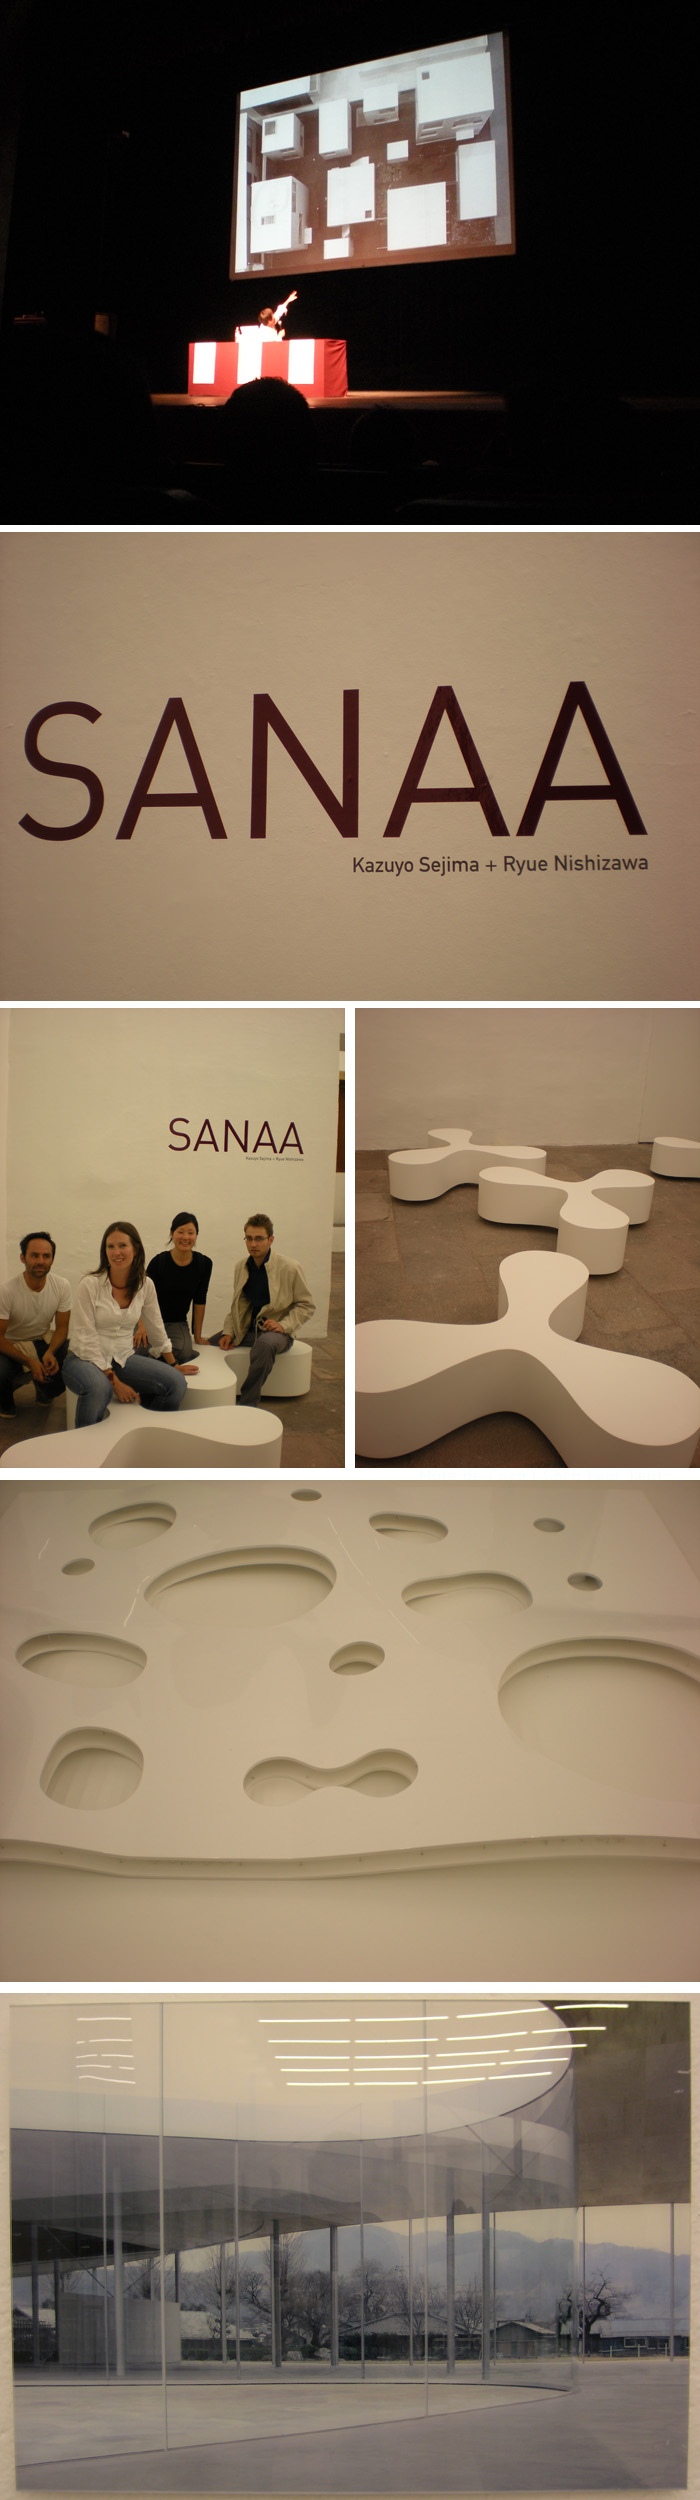 Exhibition of SANAA in Mexico City